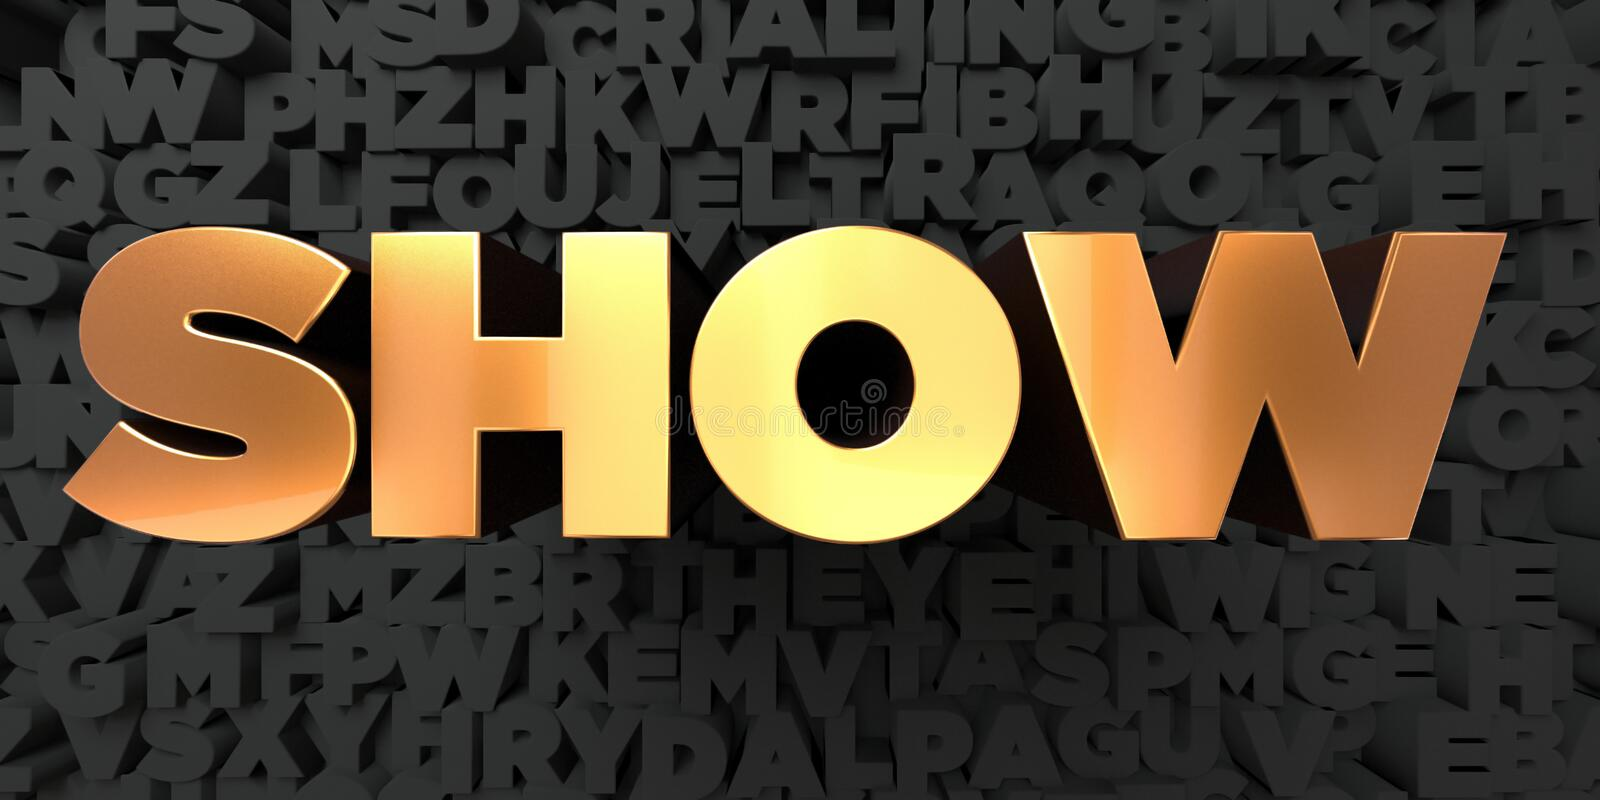 Show - Gold text on black background - 3D rendered royalty free stock picture. This image can be used for an online website banner ad or a print postcard stock illustration